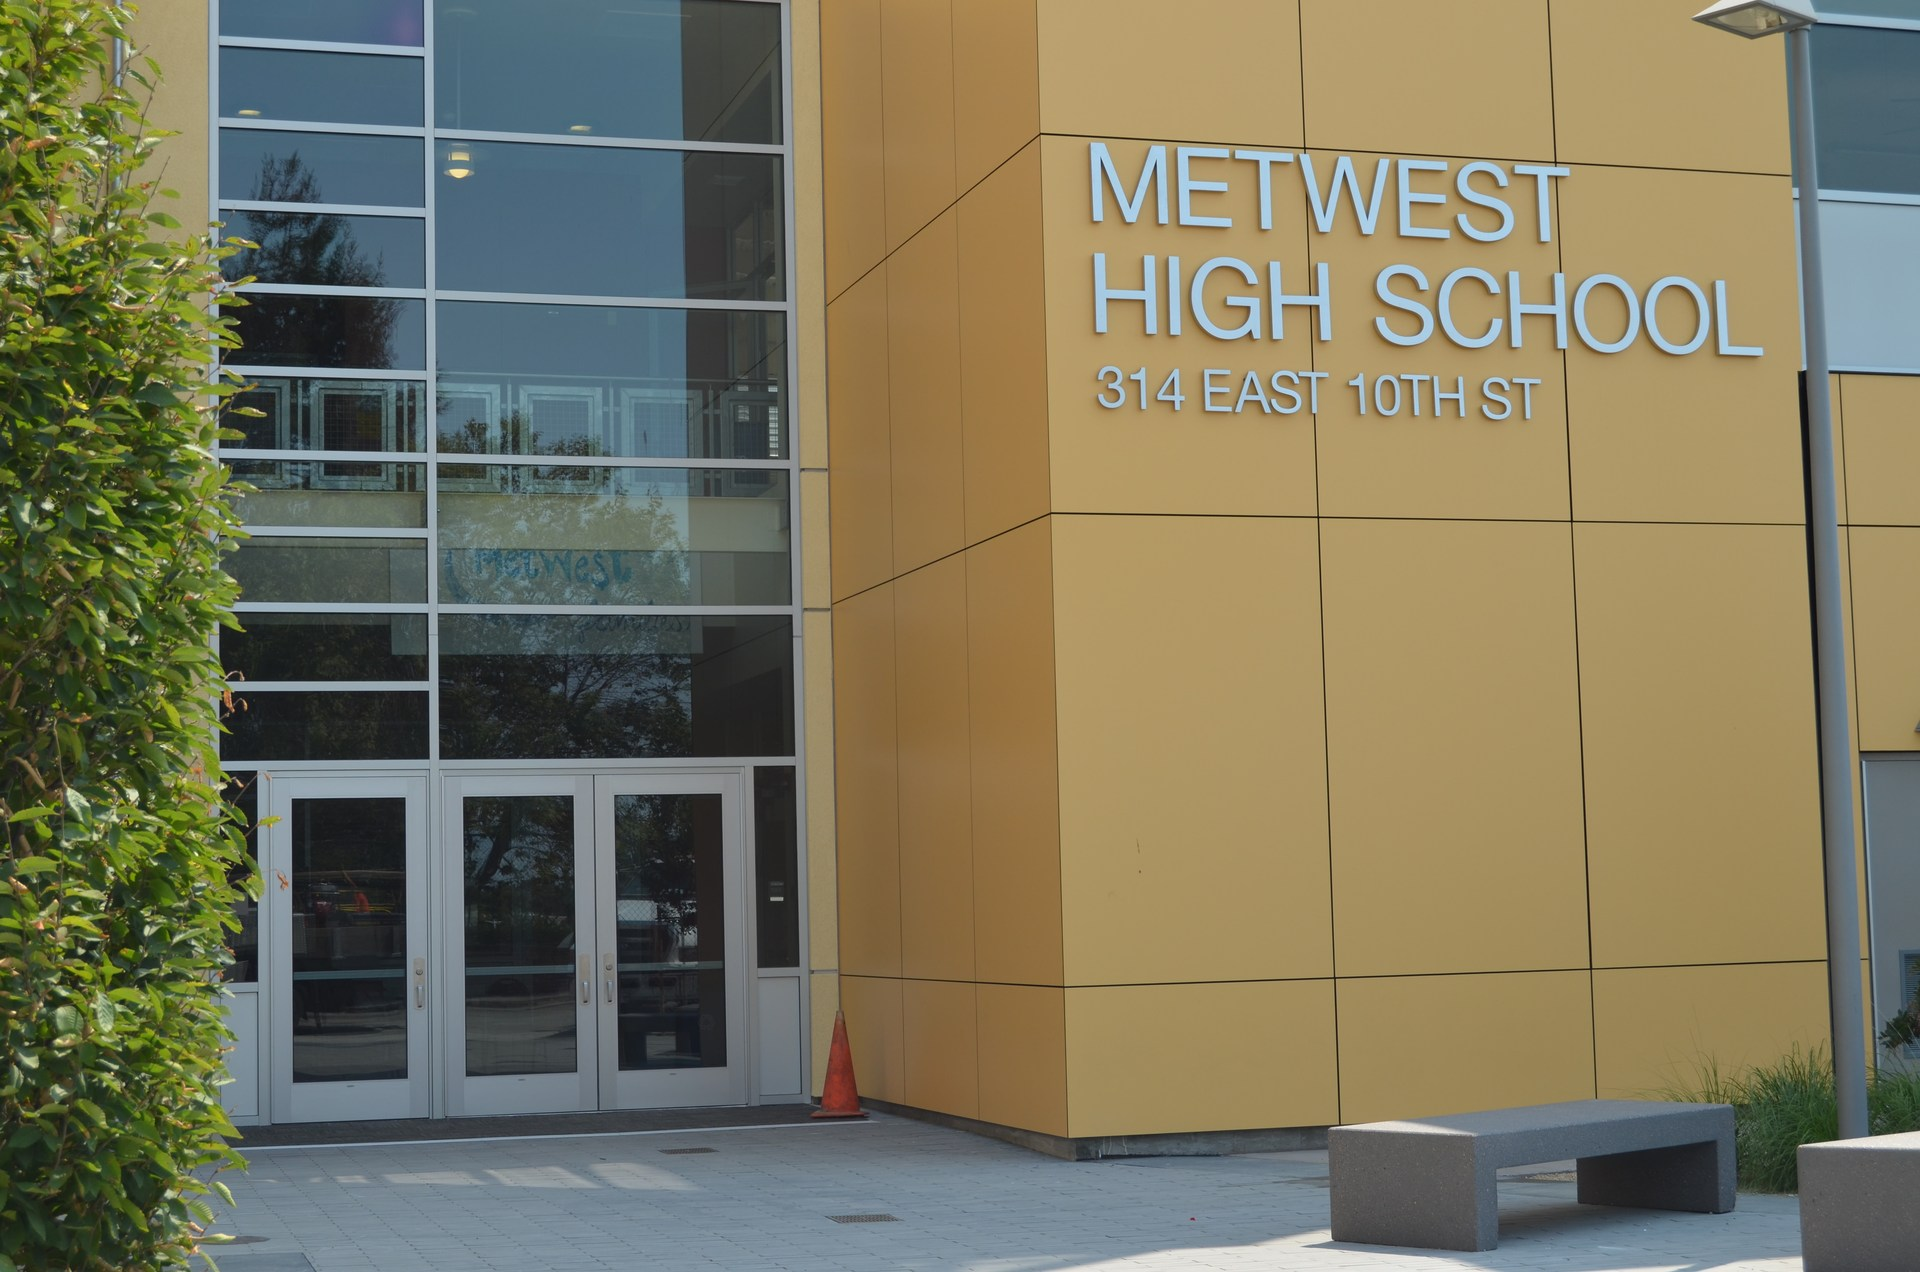 Entry doors to MetWest High School